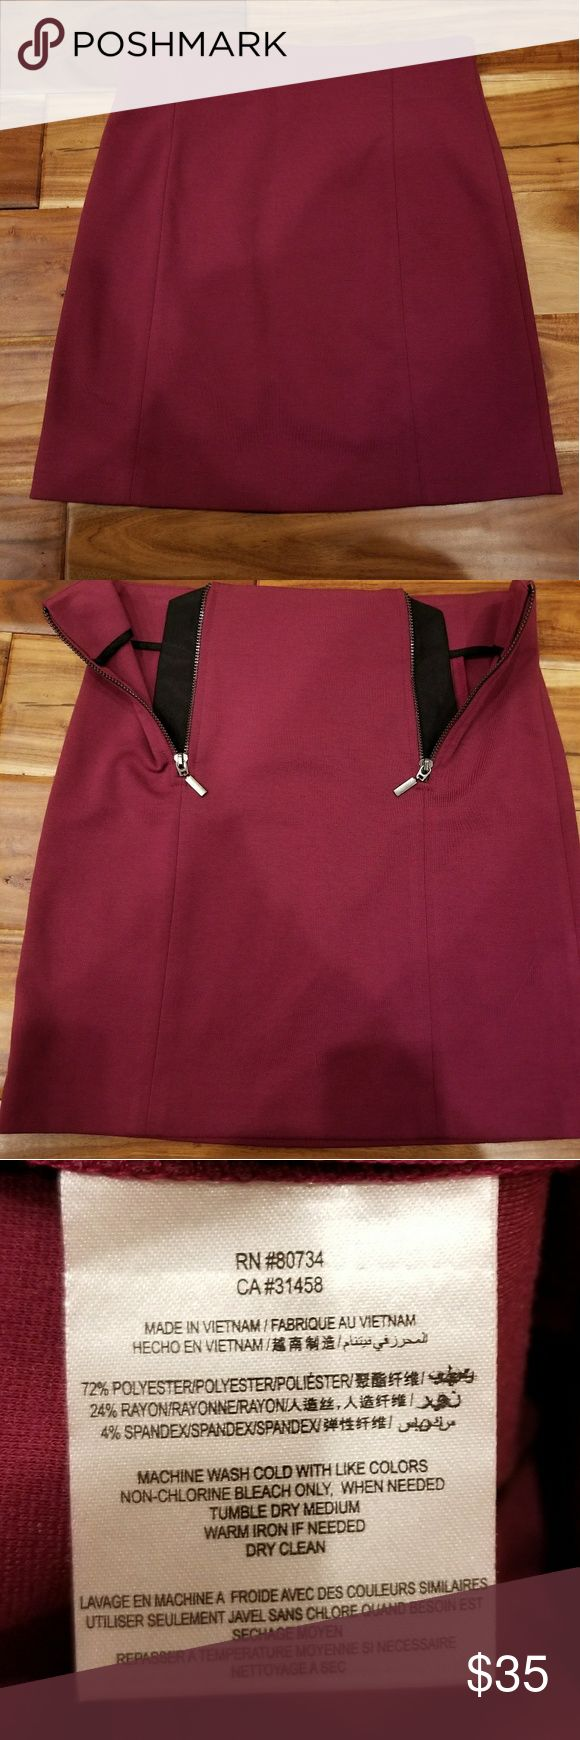 NWT BCBGeneration Front Zipper Mini Skirt This gorgeous mini is brand new waiting for the right owner. It has two front zippers and lays just above the knee. Never been worn! Enjoy! BCBGeneration Skirts Mini